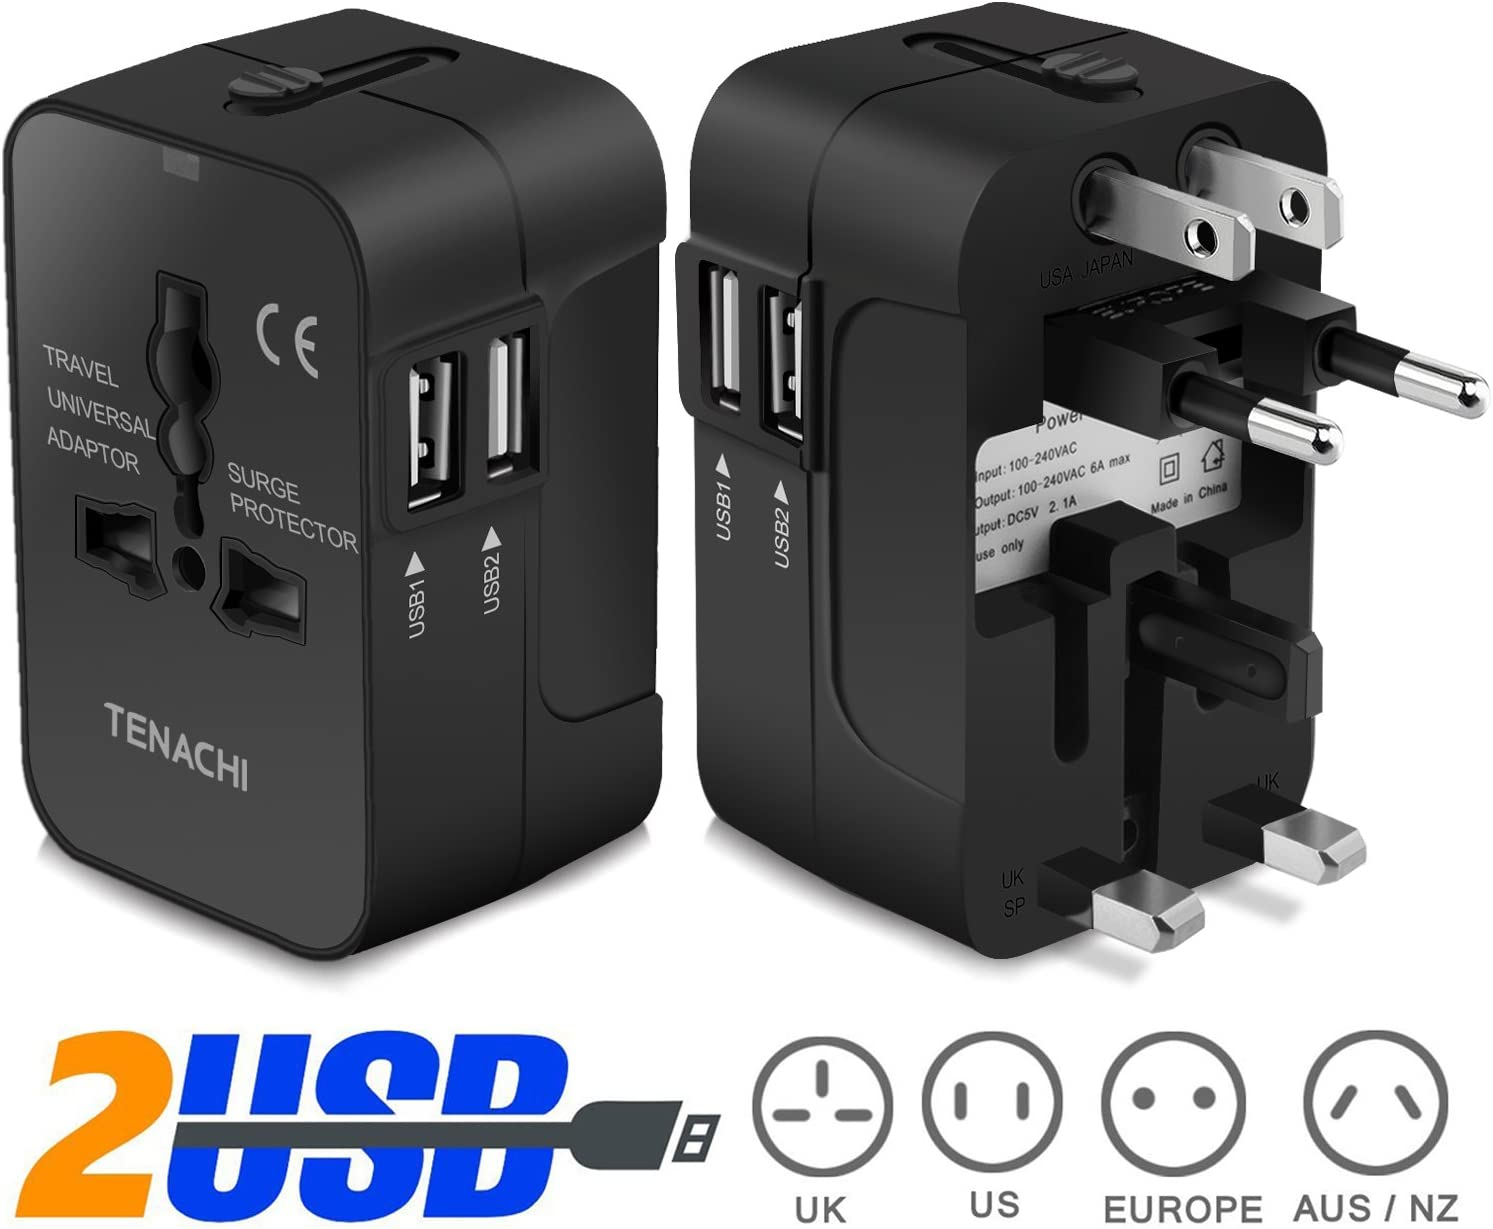 TENACHI Travel Adapter Worldwide All in One Universal Plug Adapter Wall Charger with Dual USB Charging Ports for USA EU UK AUS